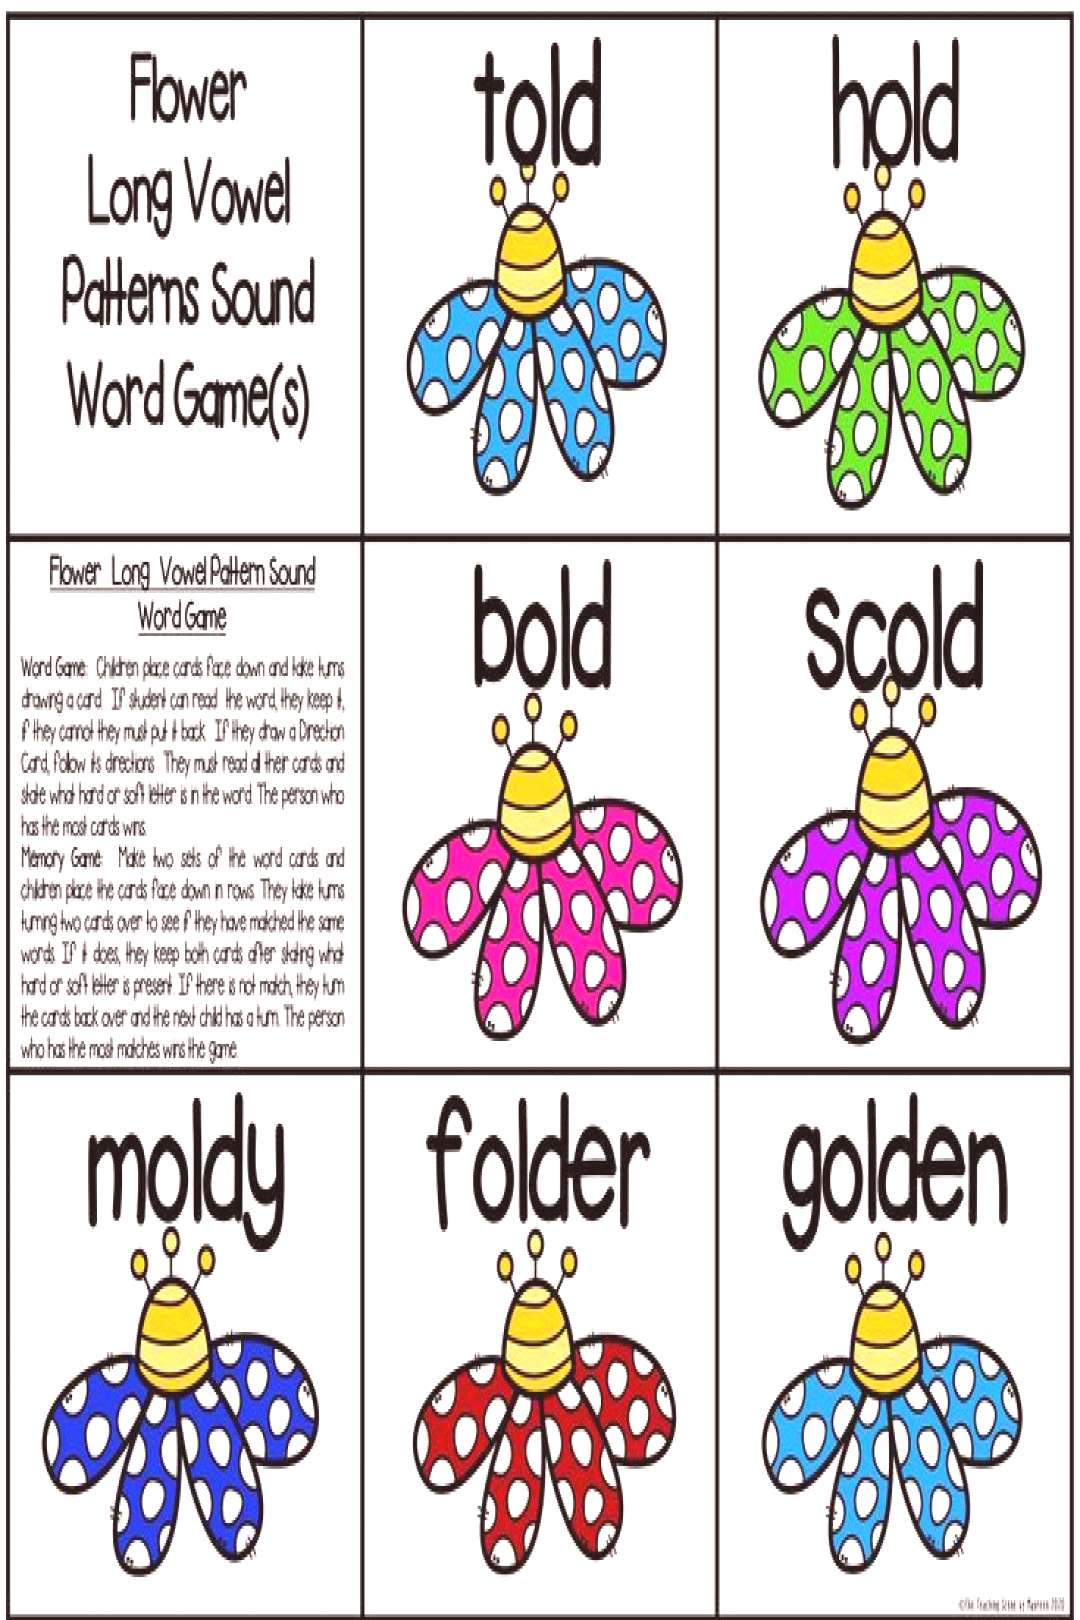 Long Vowel Pattern Sounds Centers amp Worksheets Are you looking for some practice activities for the